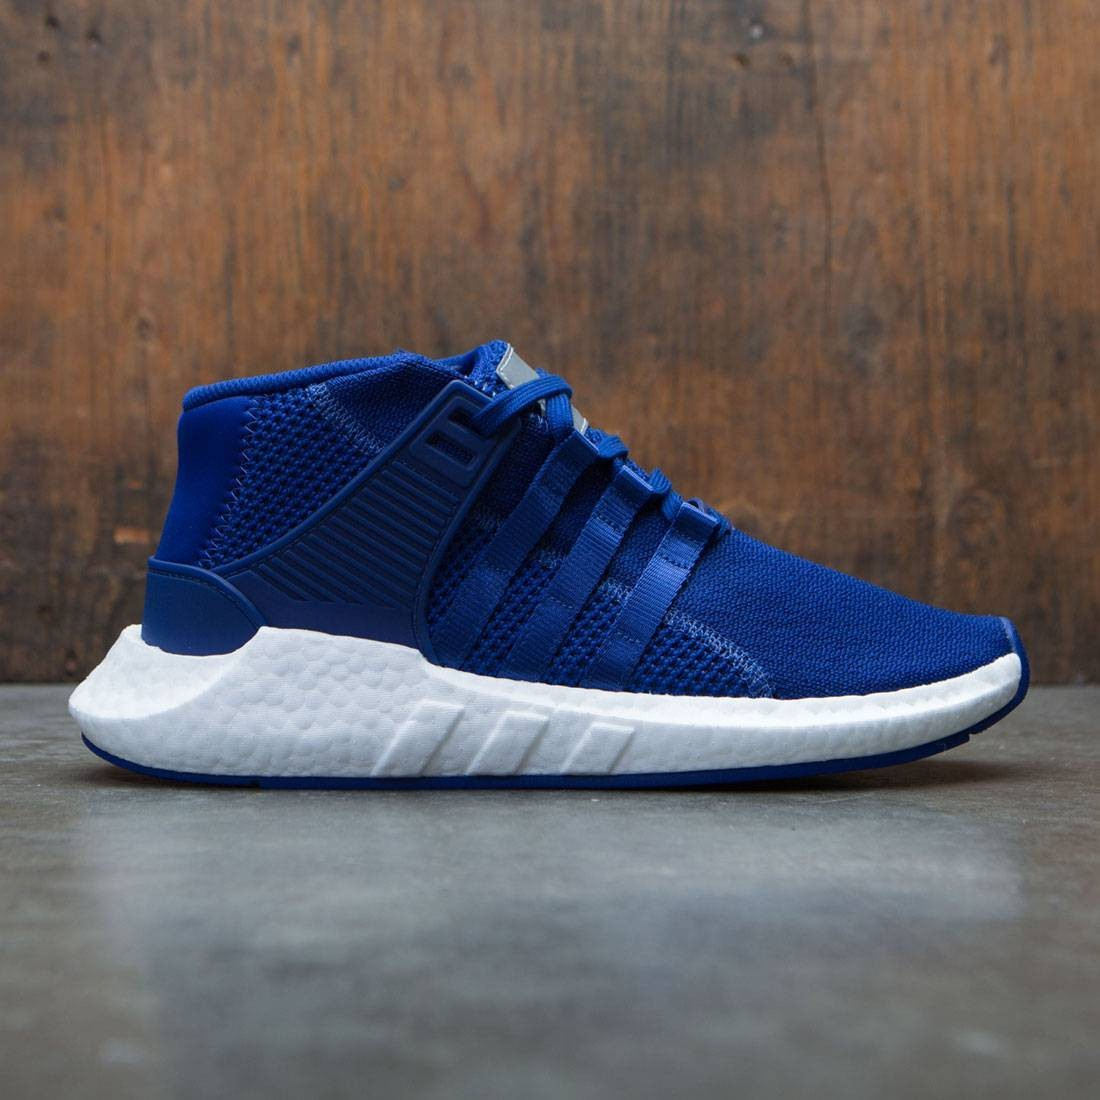 e600b51e51fd adidas x mastermind world men eqt support 9317 mid blue mystery ink  footwear white